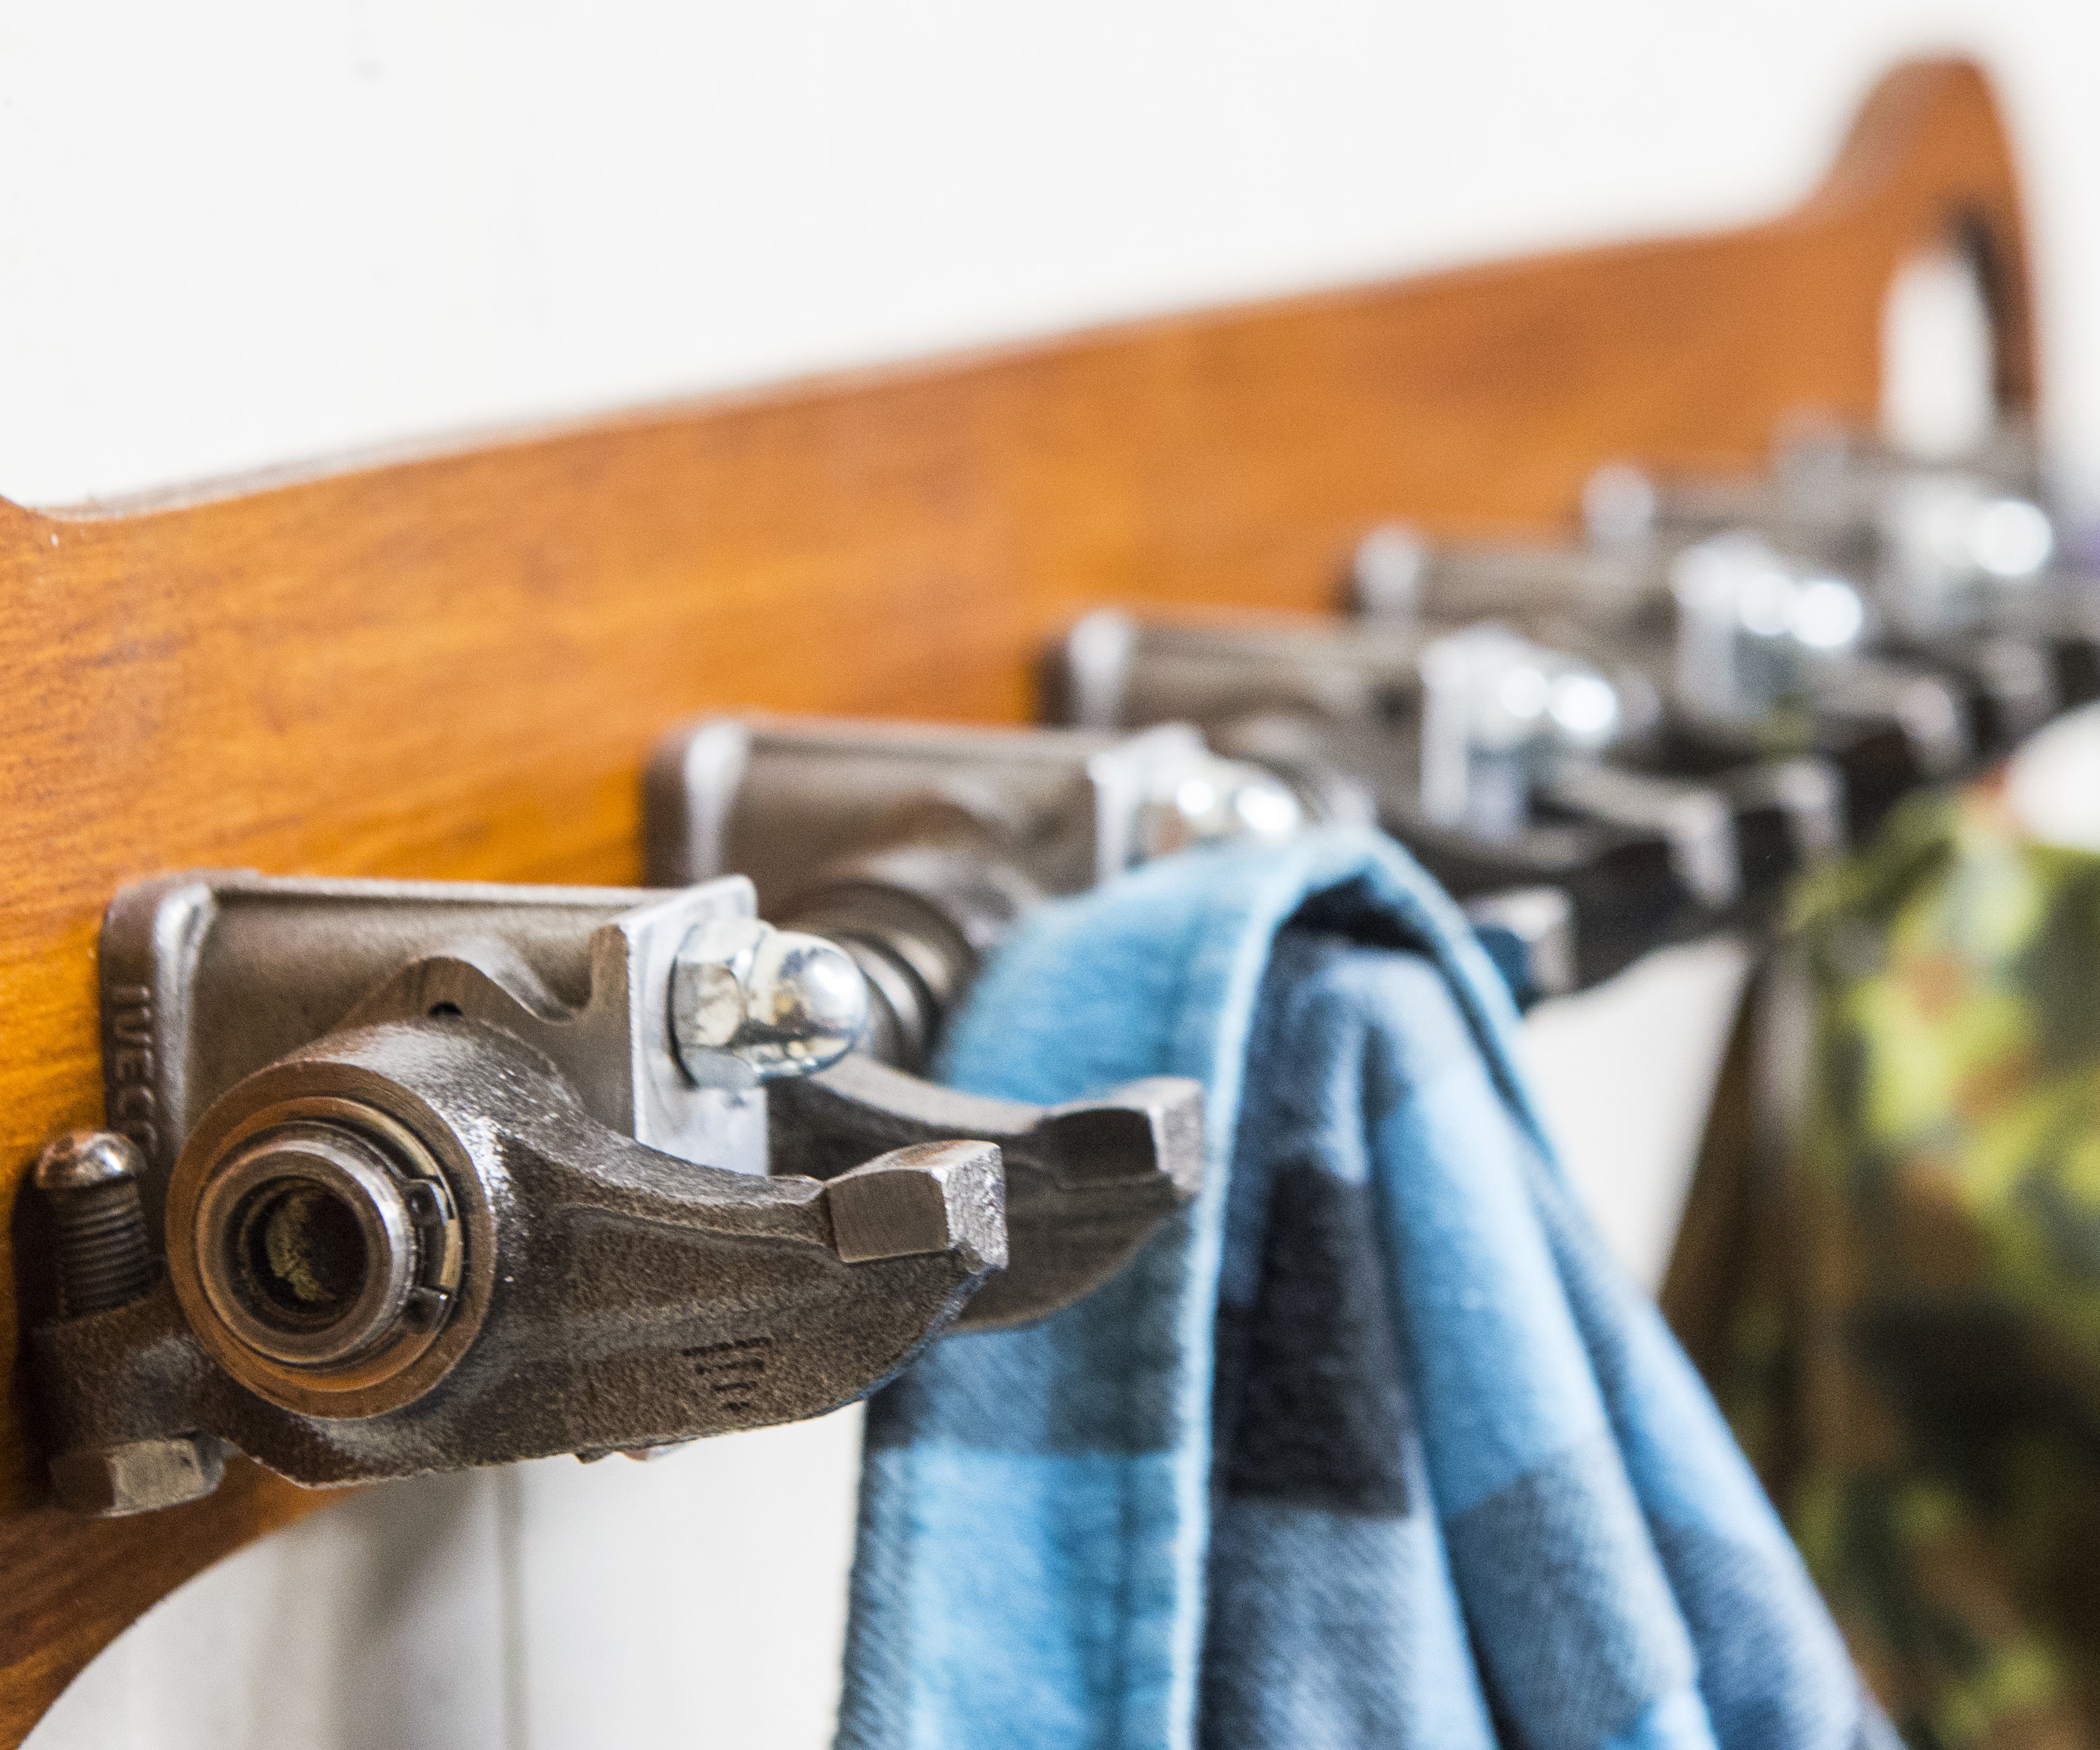 Rocker Arms Clothes Hanger